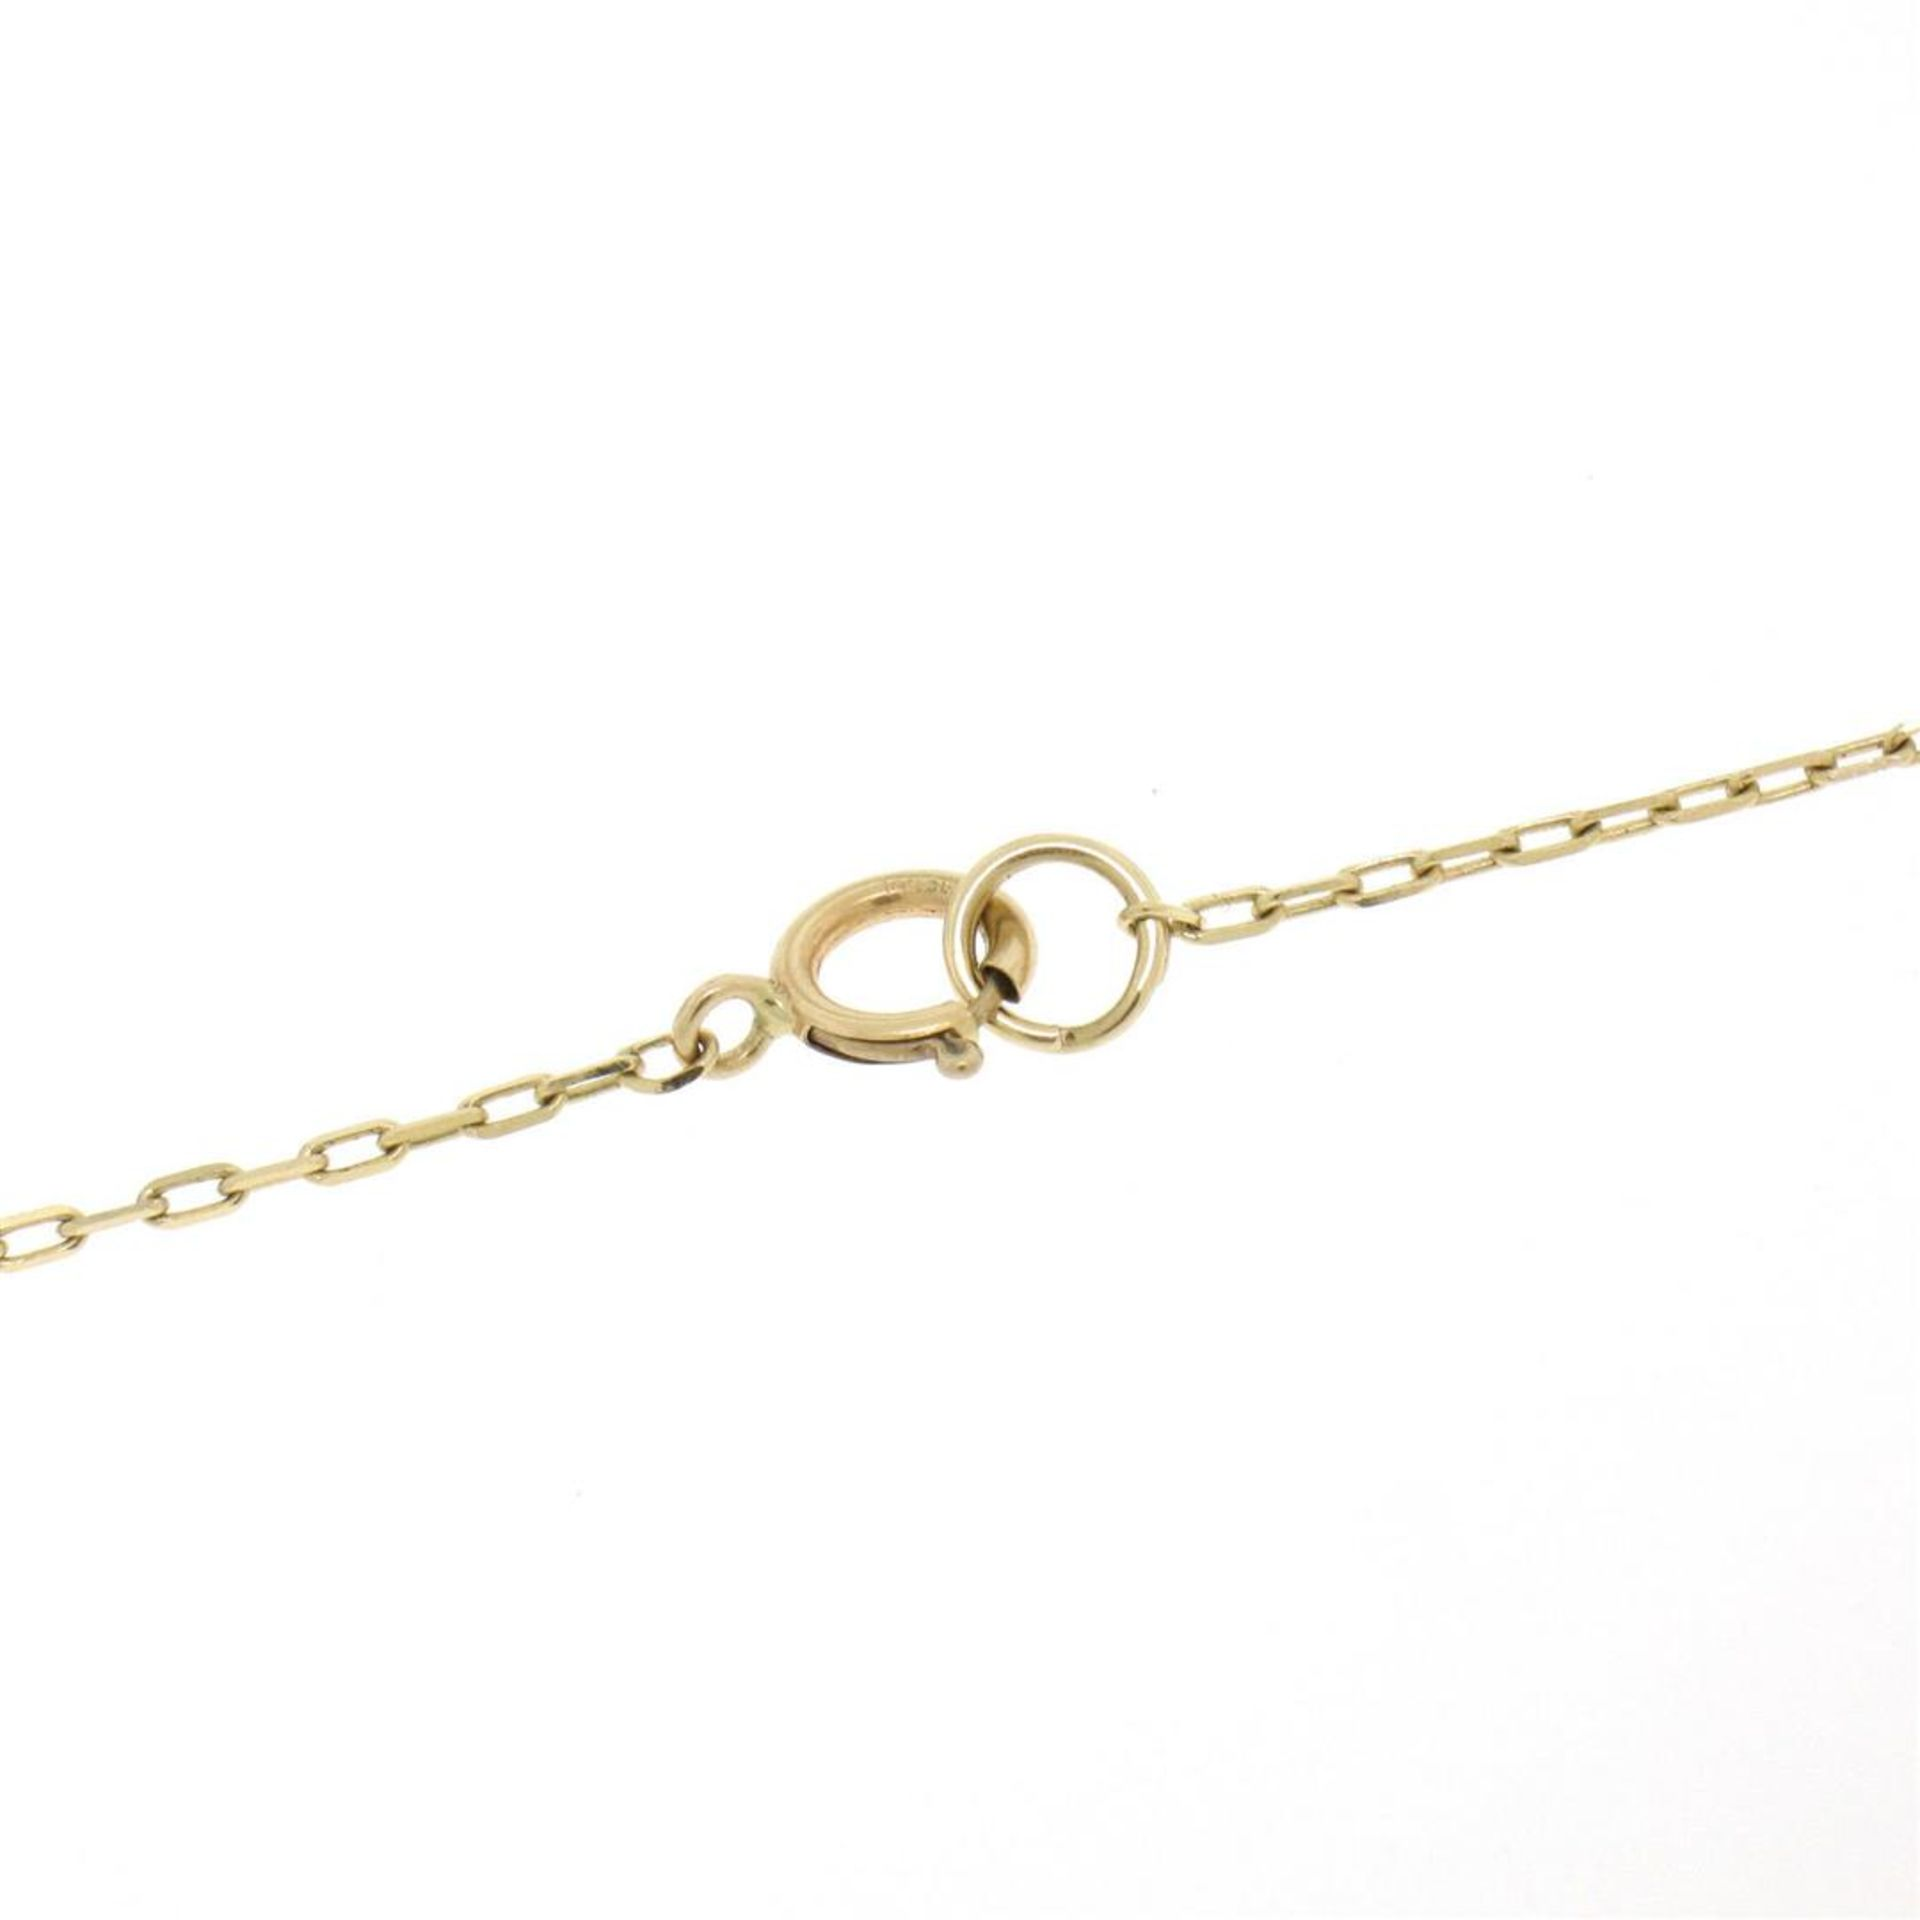 18kt Yellow Gold 10.45mm Pearl and Diamond Solitaire Pendant Necklace - Image 5 of 5